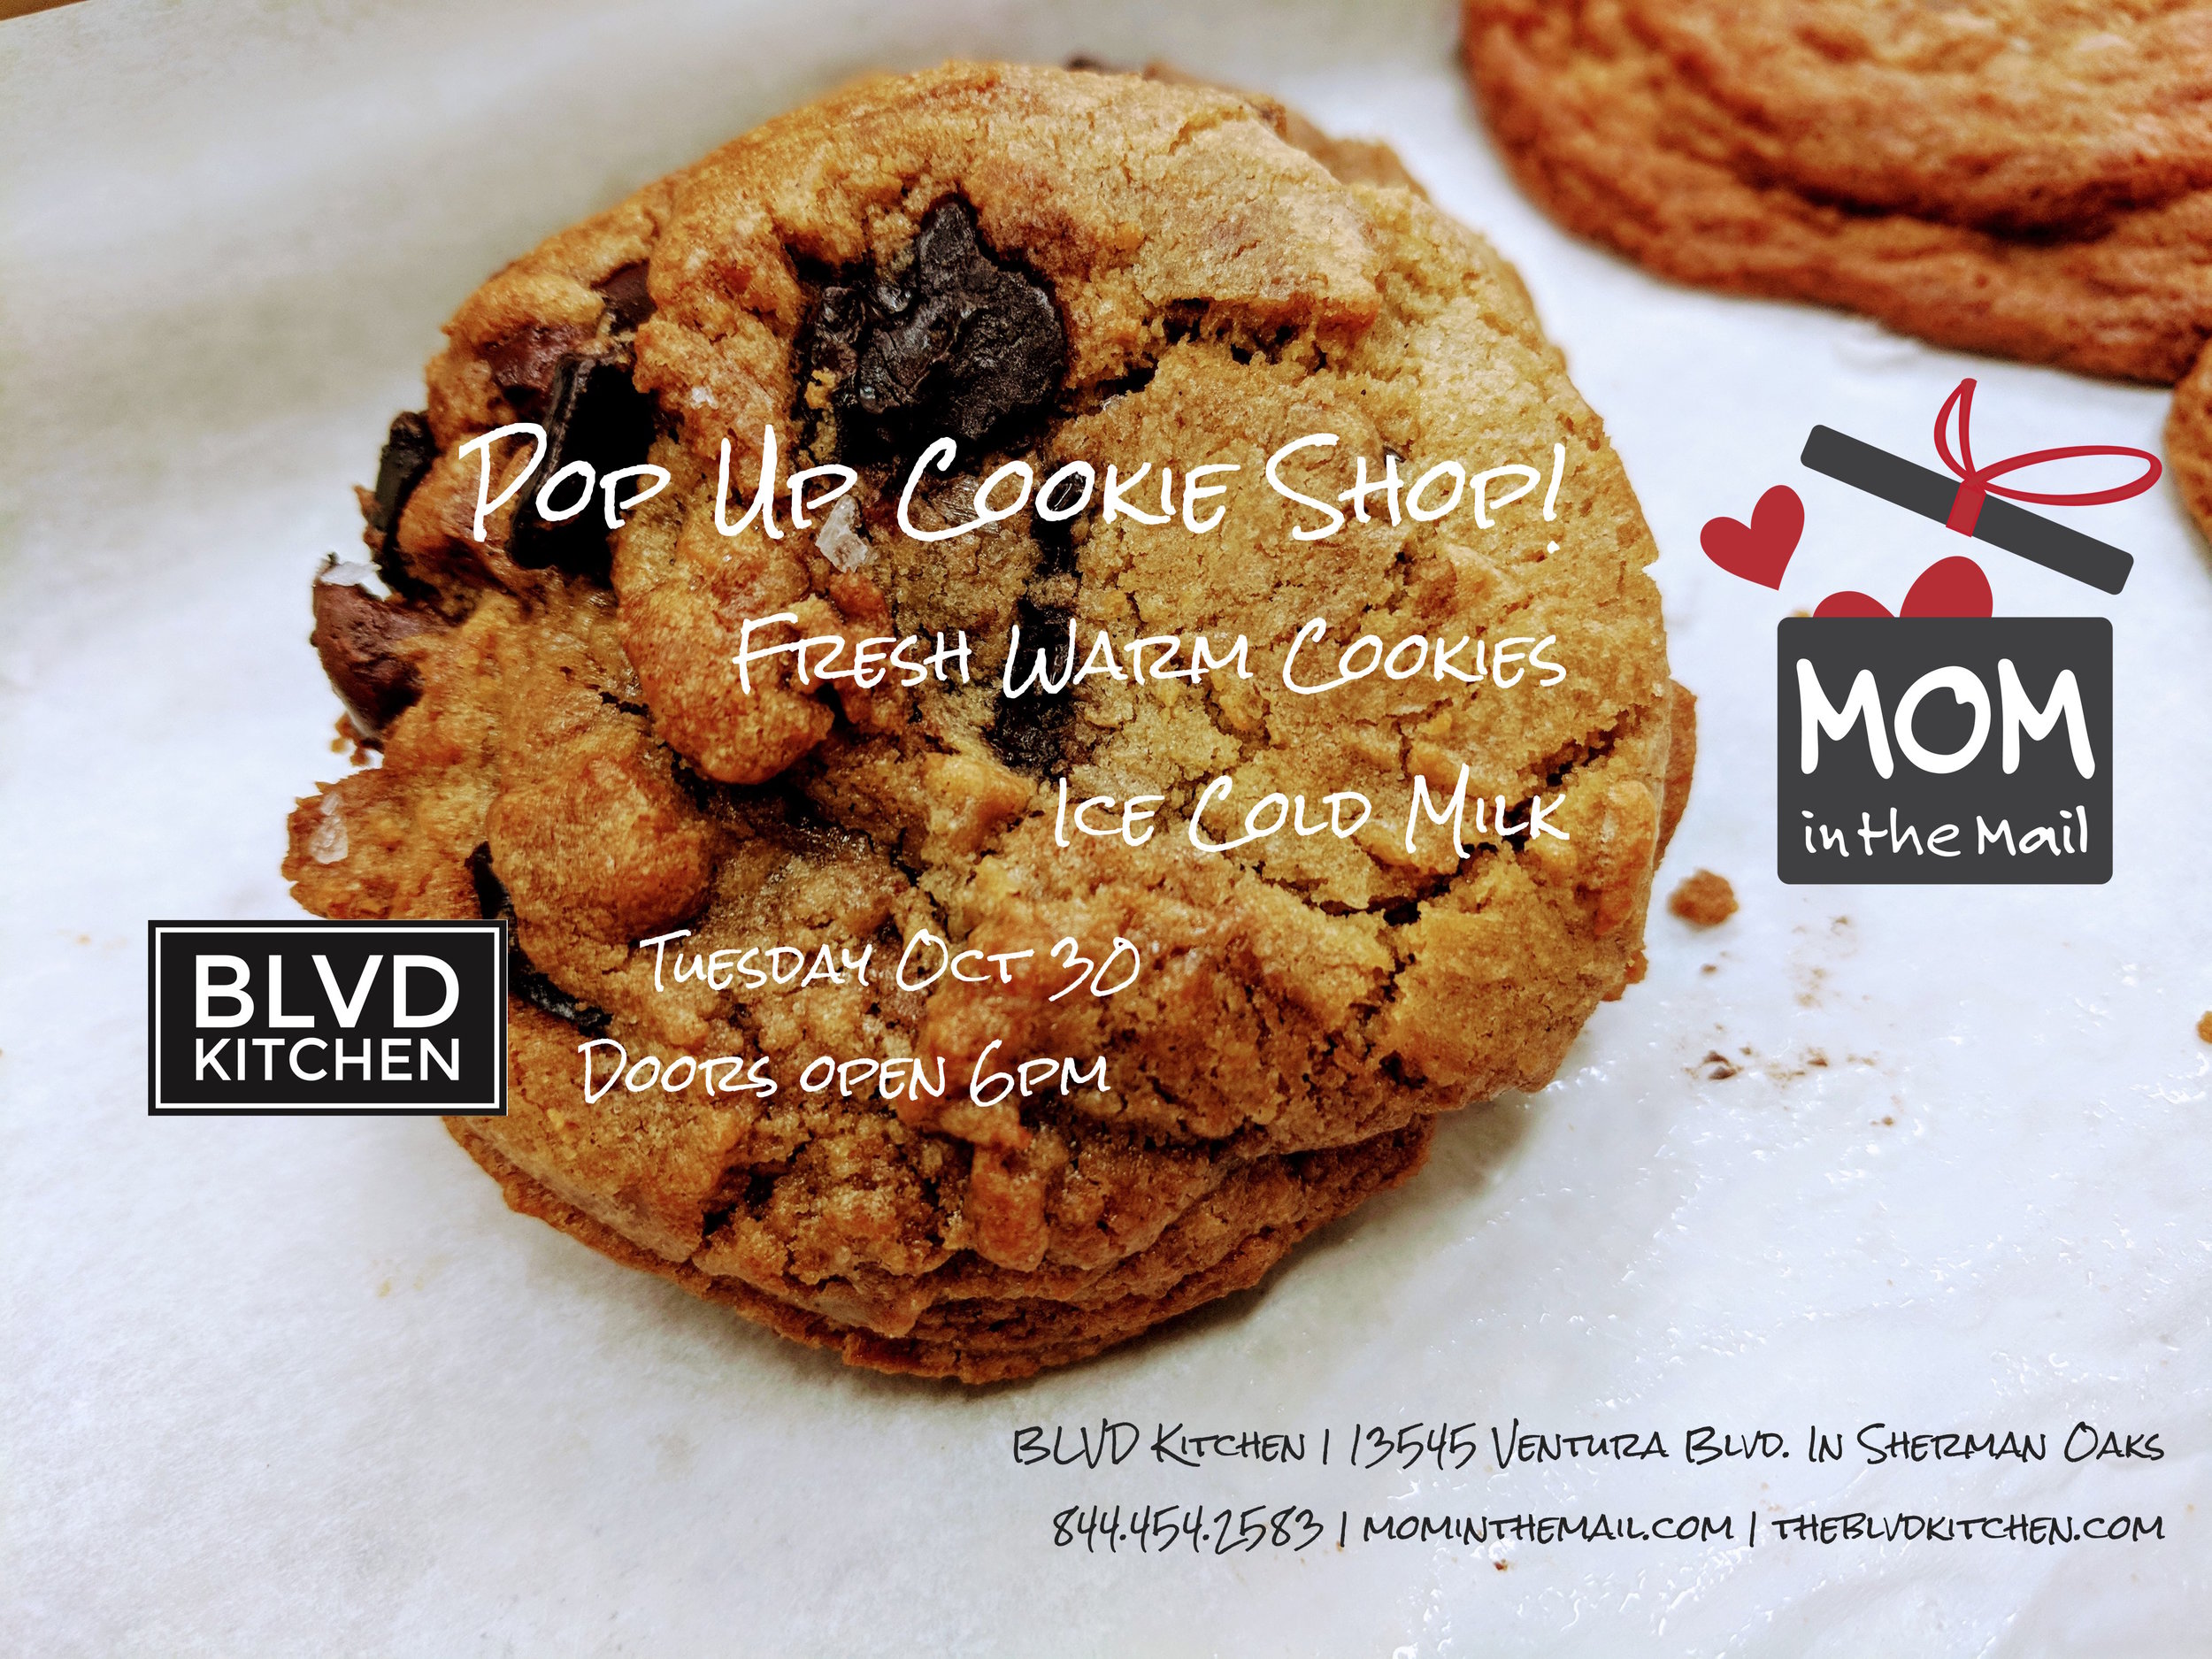 BLVD Mom in the Mail Pop Up Bakery Flyer.jpeg